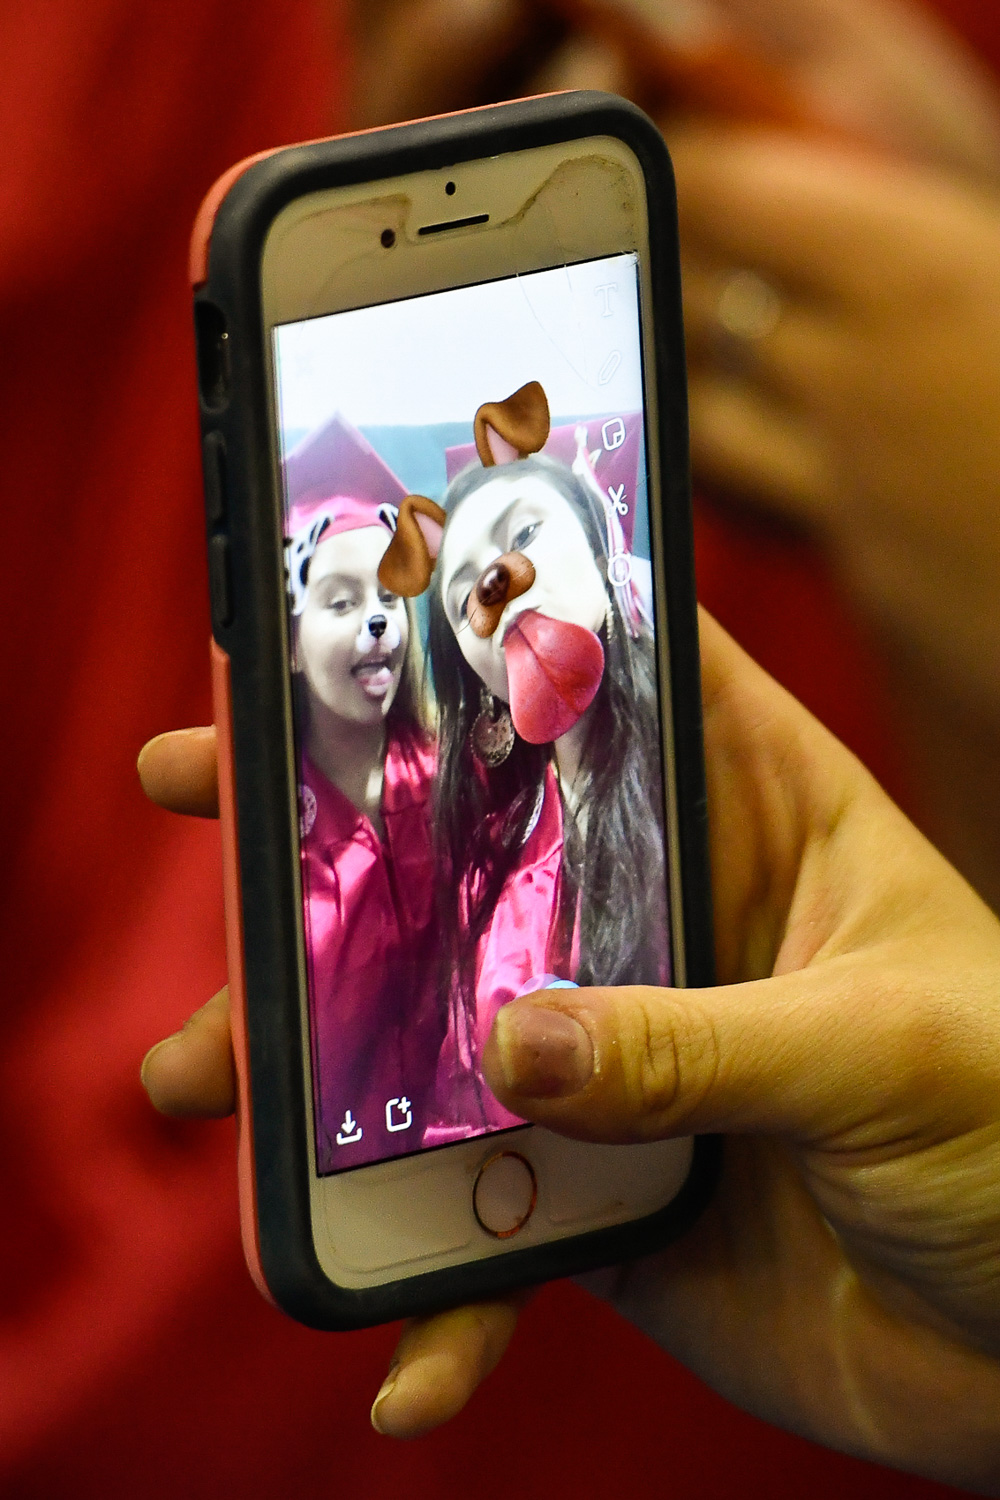 Nikon D500, 1/320 @ f/2.8, ISO 1600, 70-200mm  Roufaida Bouri and Halima Castano take a Snapchat selfie before the start of the Somerville High School Class of 2017 Graduation Exercises at the Tufts University Gantcher Center, Monday, June 5, 2017. [Wicked Local Staff Photo / David Sokol]